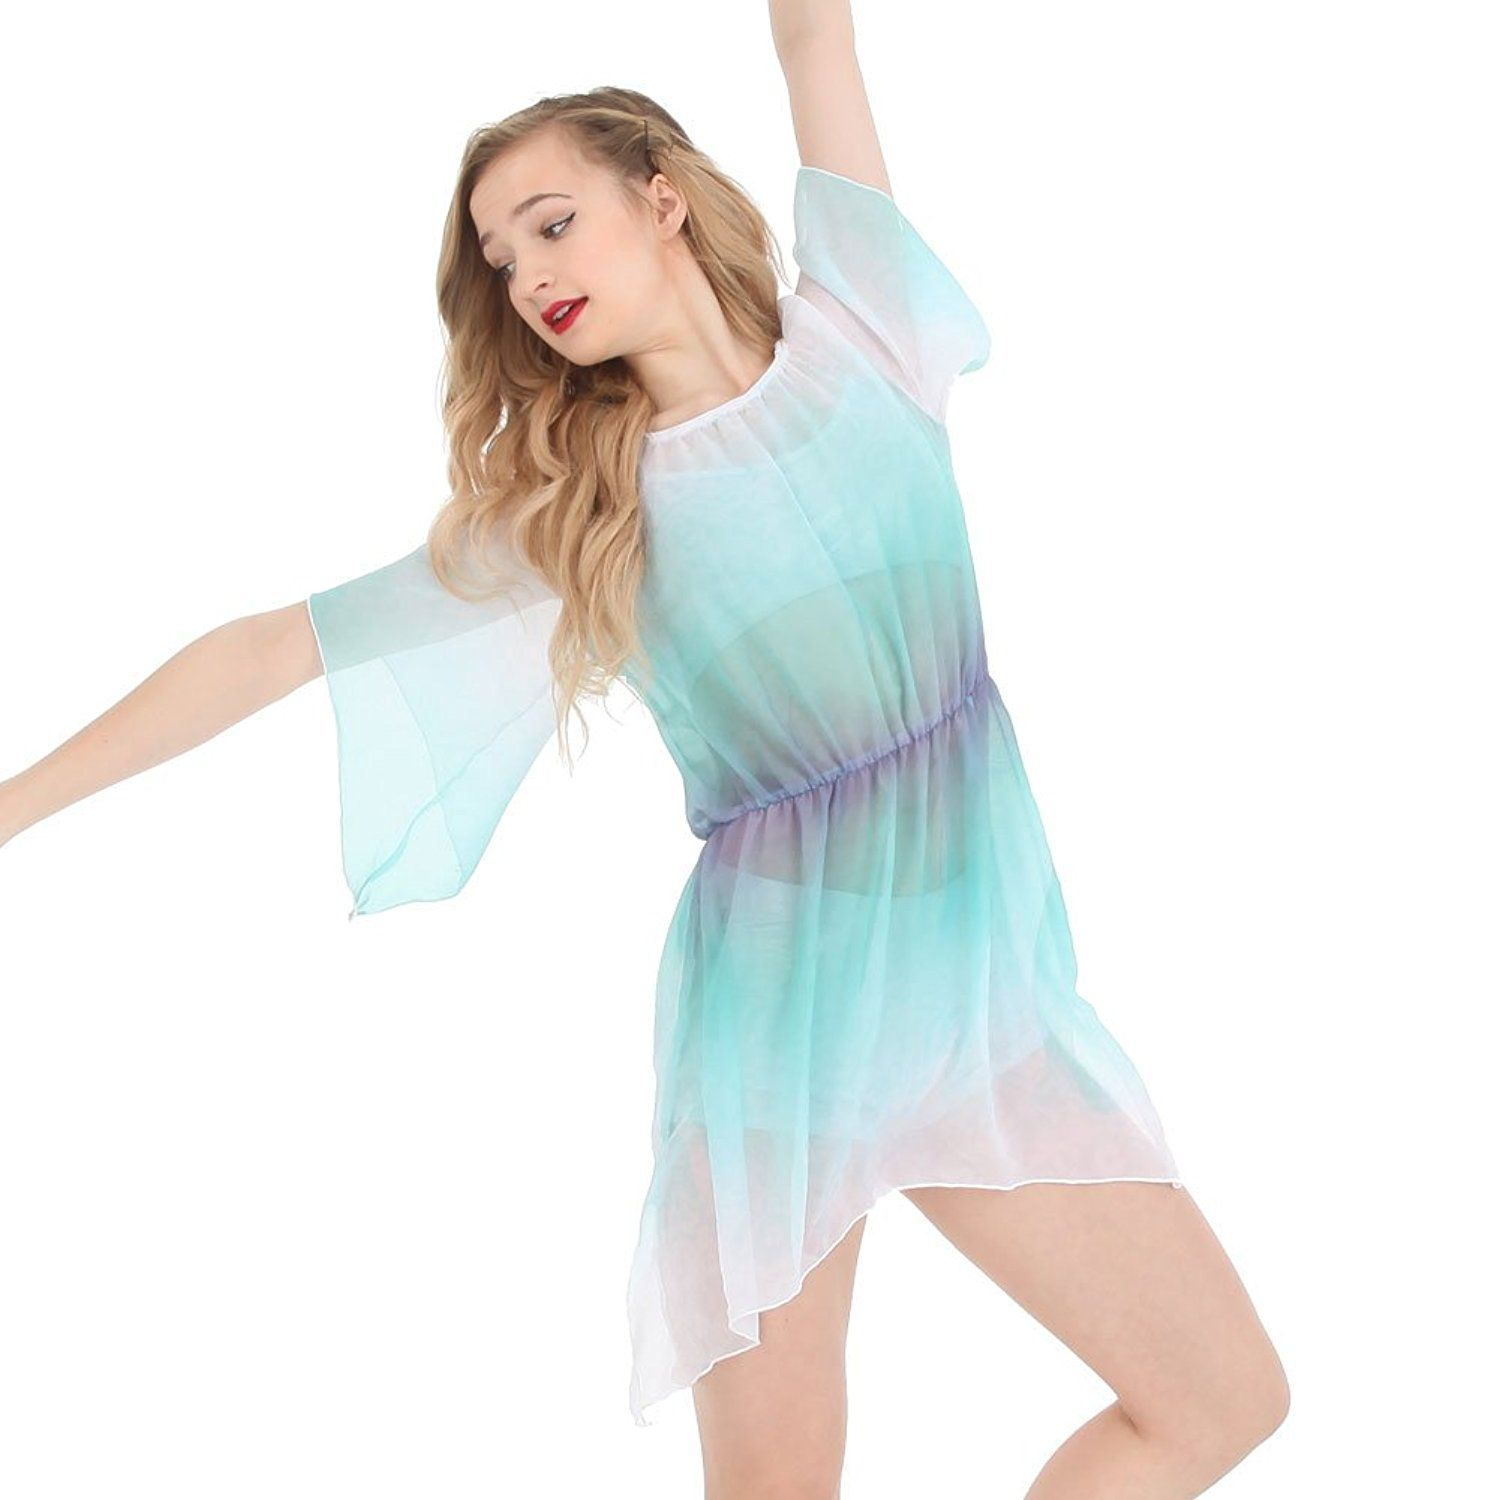 20fbd4deee1d Amazon.com: Alexandra Collection Womens Lace Watercolor Lyrical Dance  Costume Overdress: Clothing